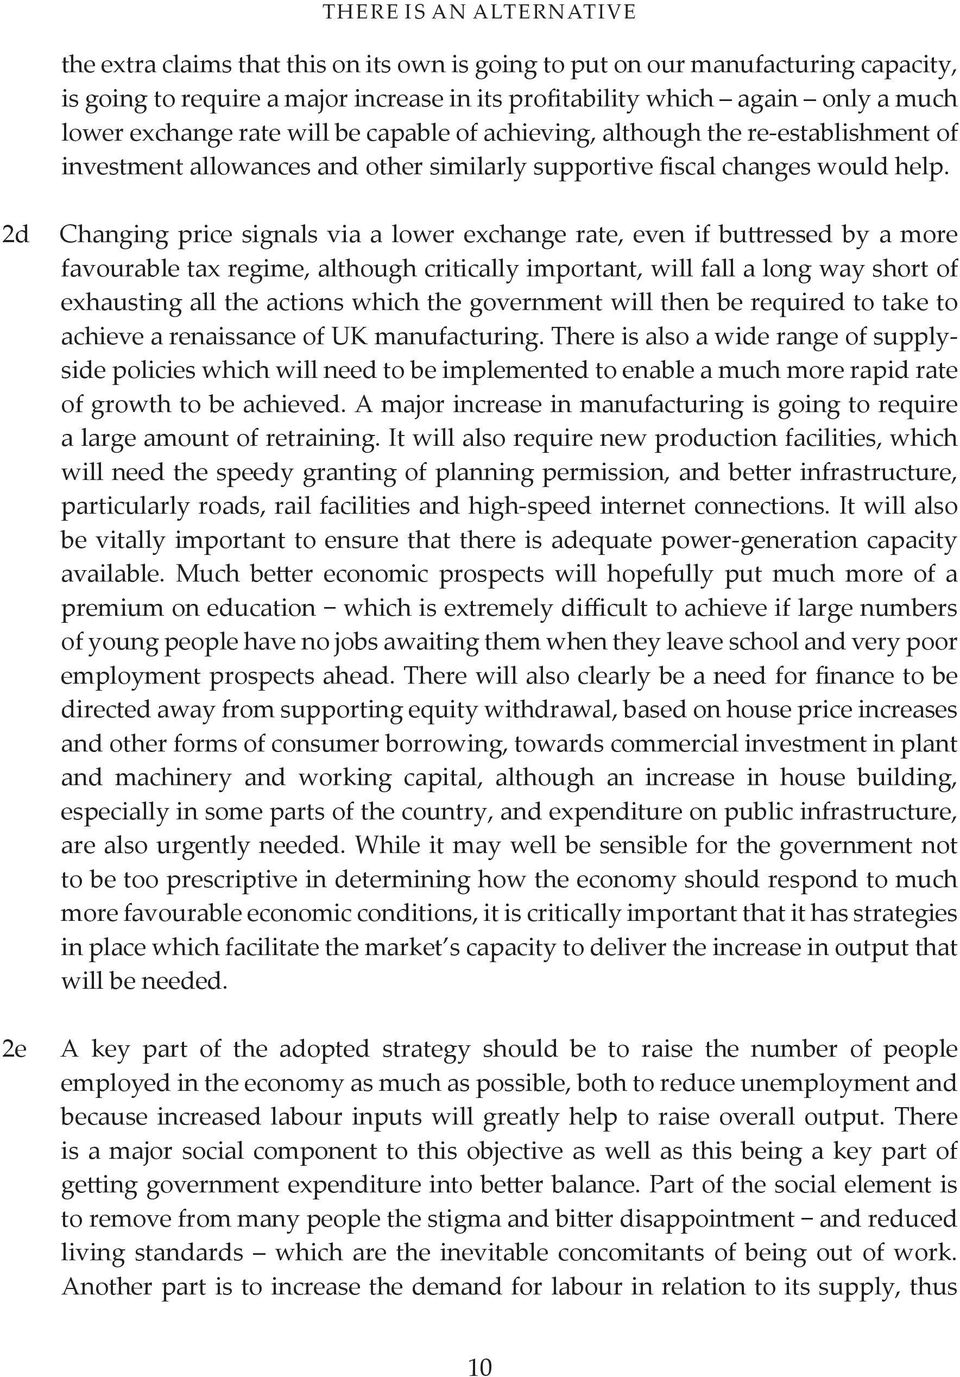 2d 2e Changing price signals via a lower exchange rate, even if buttressed by a more favourable tax regime, although critically important, will fall a long way short of exhausting all the actions